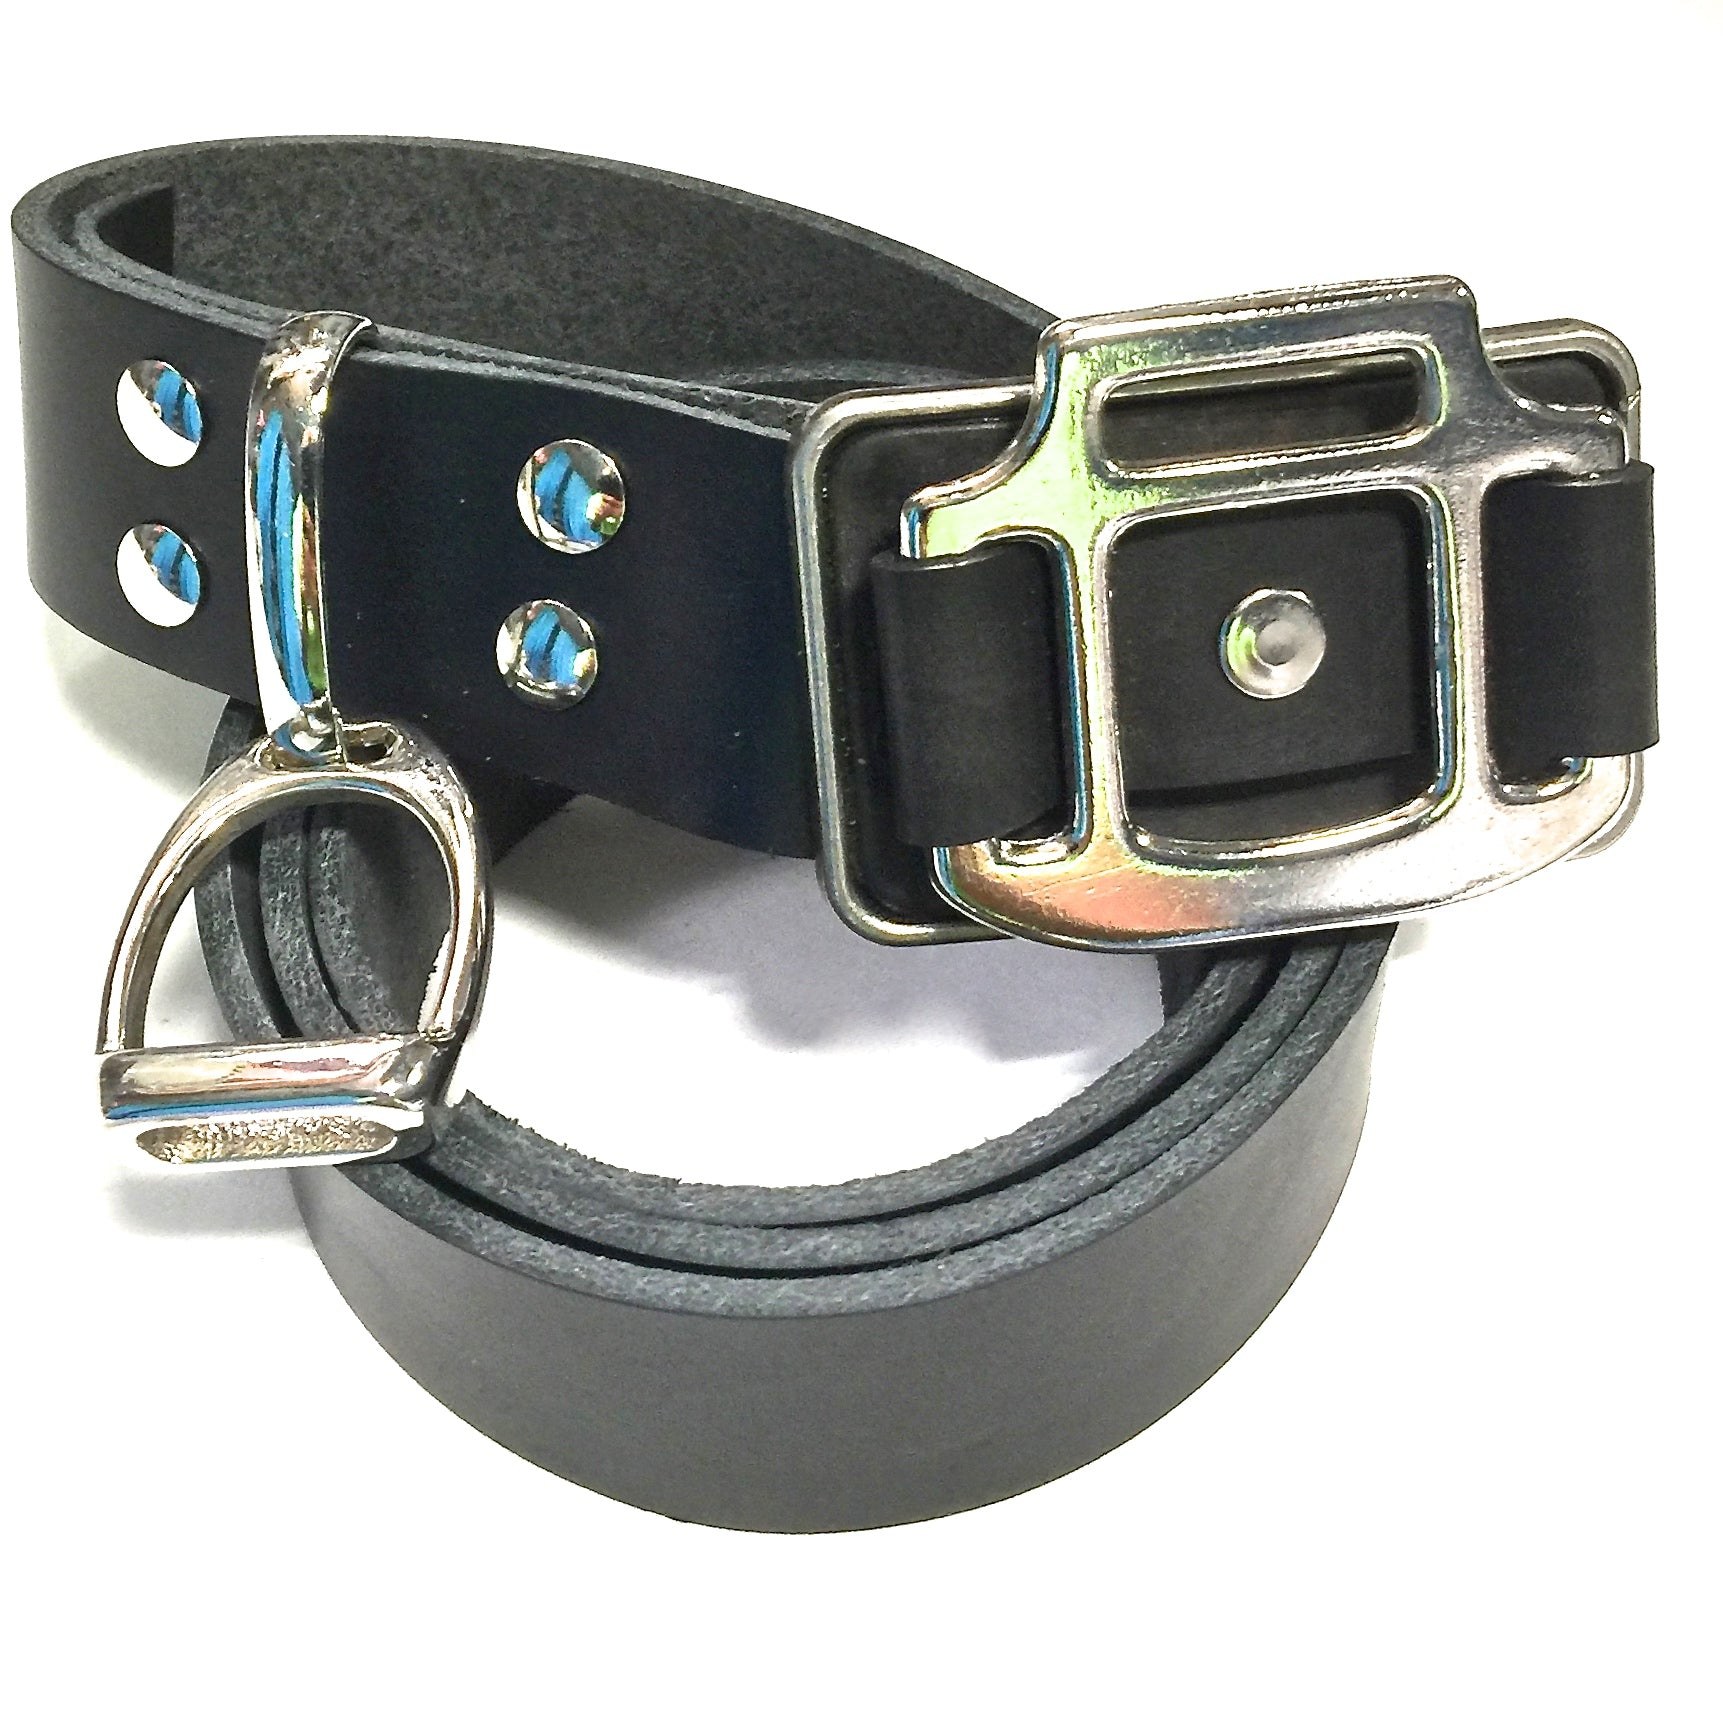 The Equestrian belt by nyet jewelry